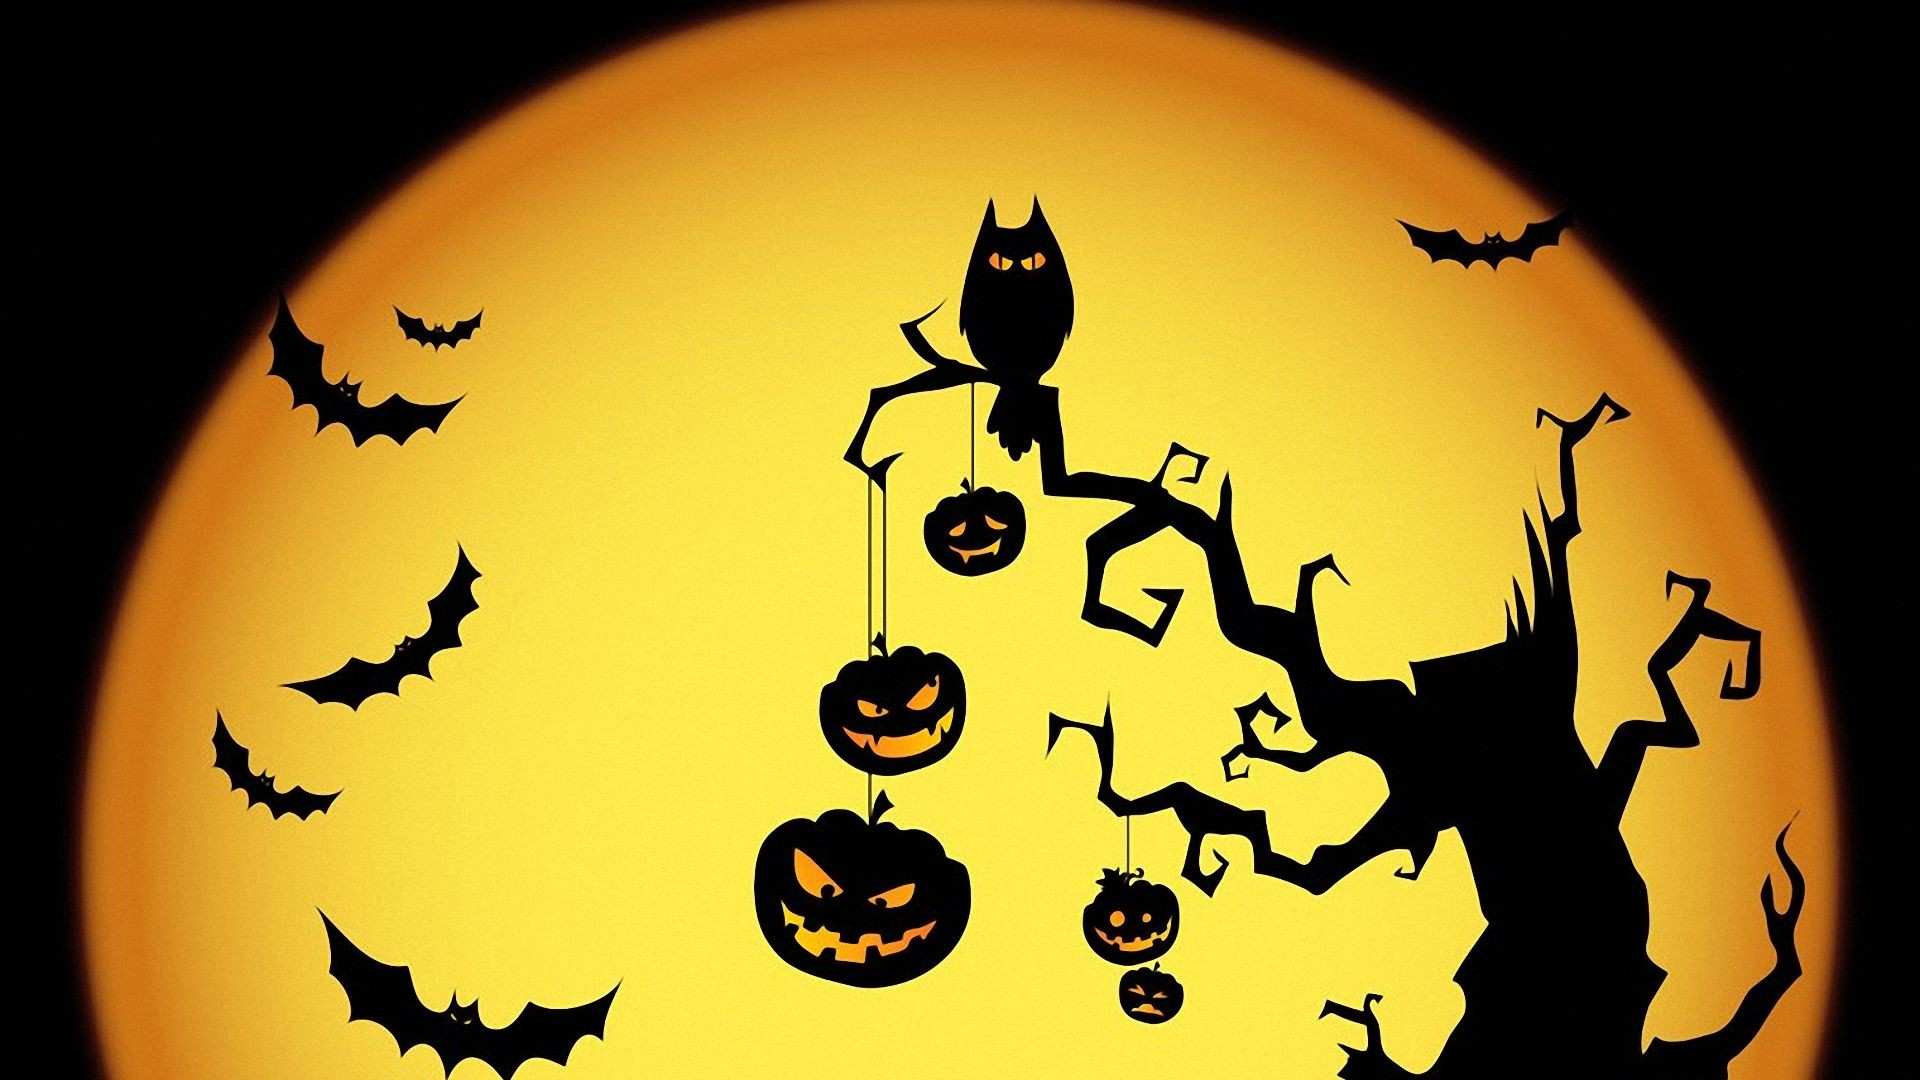 Halloween Wallpapers, Wallpapers & Pictures Free .